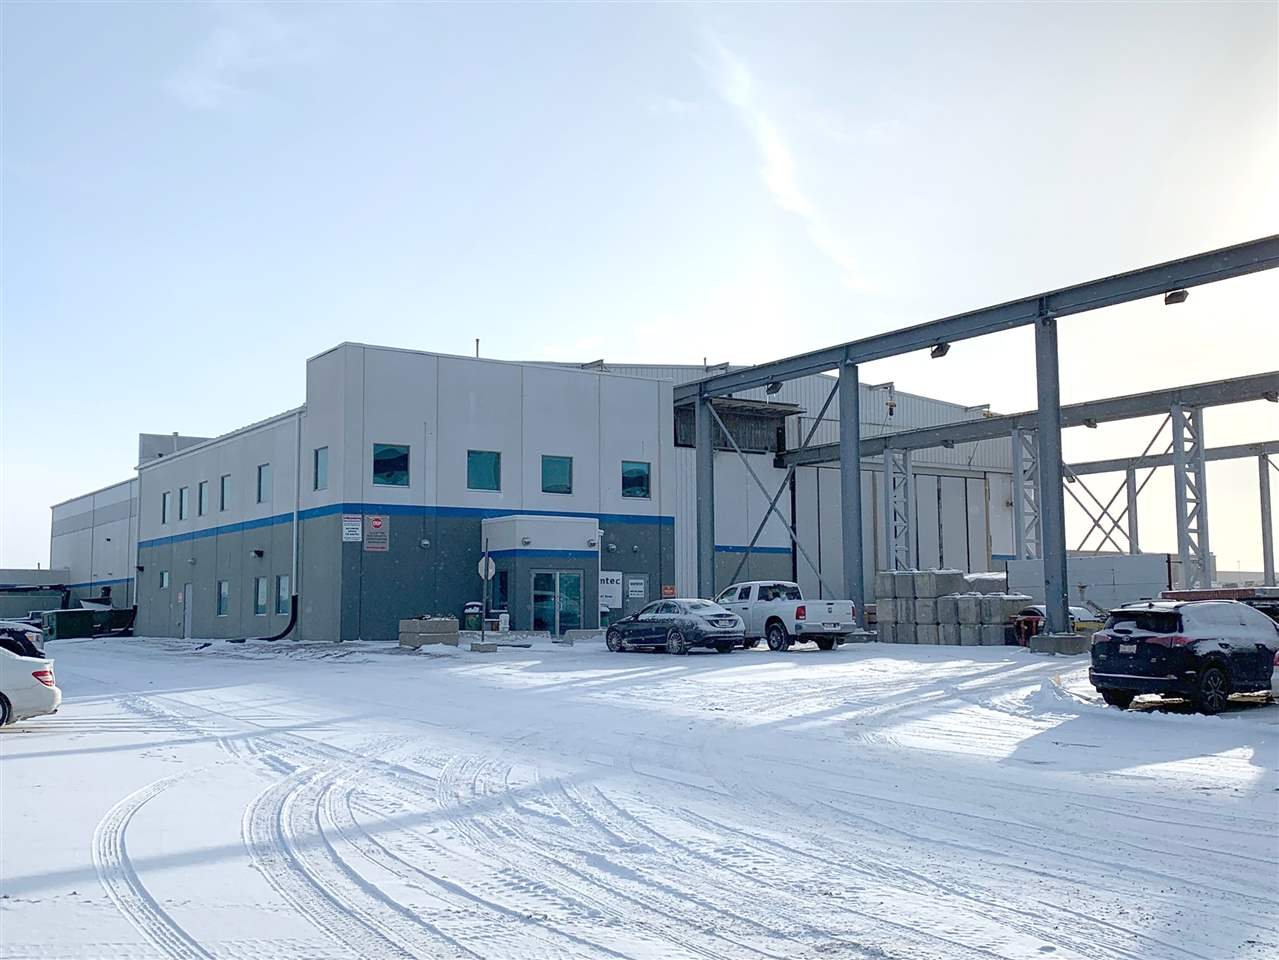 *58,850 sq.ft industrial facility on 19.22 acres in Acheson. *Fully fenced, graveled and compacted yard. *Two 54'x300' wide interior crane ways both extending to the exterior by an additional 260' and 100' respectively. *31' underhook with 37' ceilings. *Precast manufacturing equipment available including a 10' wide hydraulic heated precast panel bed and an active batch plant with 8 hoppers and a traveling bucket system. *Quick access to Highway 16 and 16A, Highway 60 and Anthony Henday Drive. *$12/sq ft and $2500/acre/month on yard.